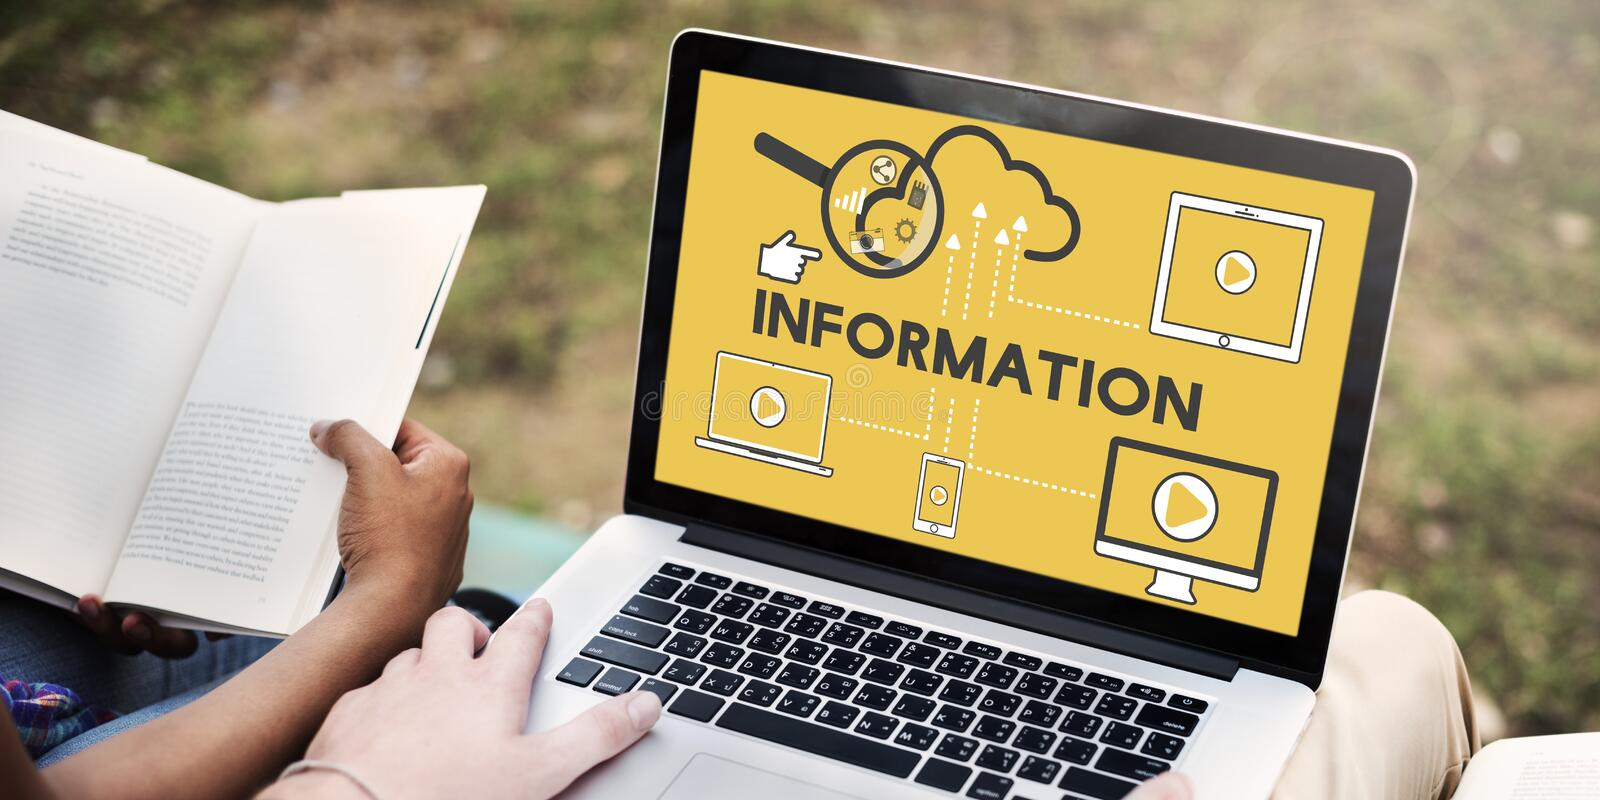 Information Data Devices Storage Technology Concept royalty free stock photography